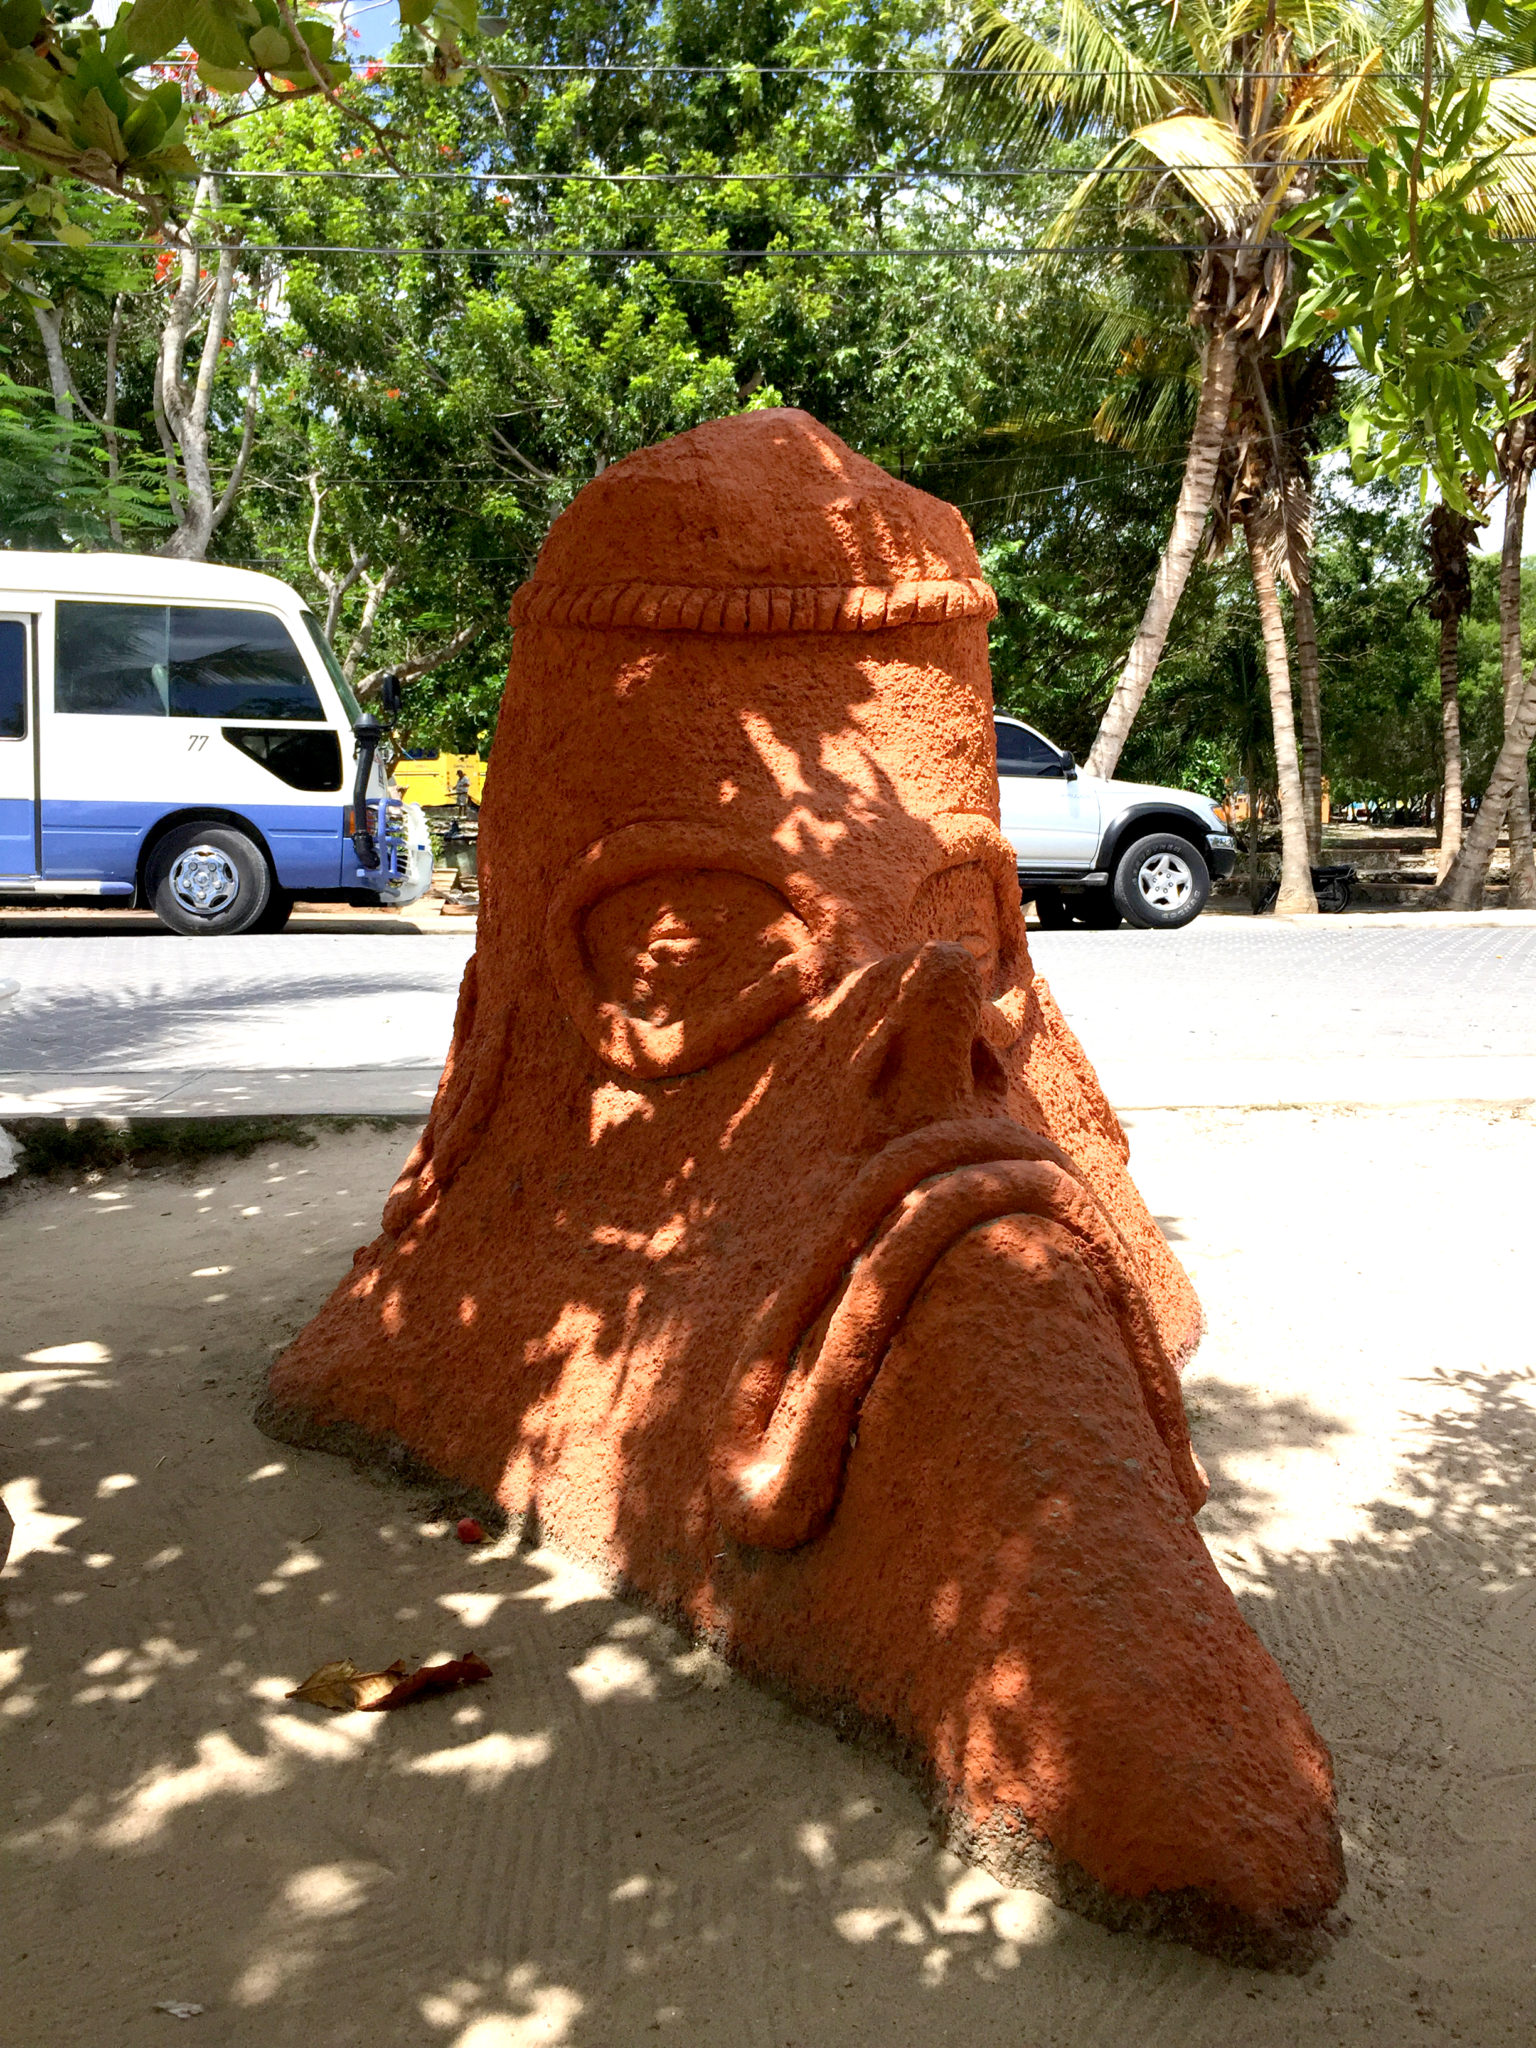 Republique_dominicaine_roadtrip_bayahibe_sculpture_tainos